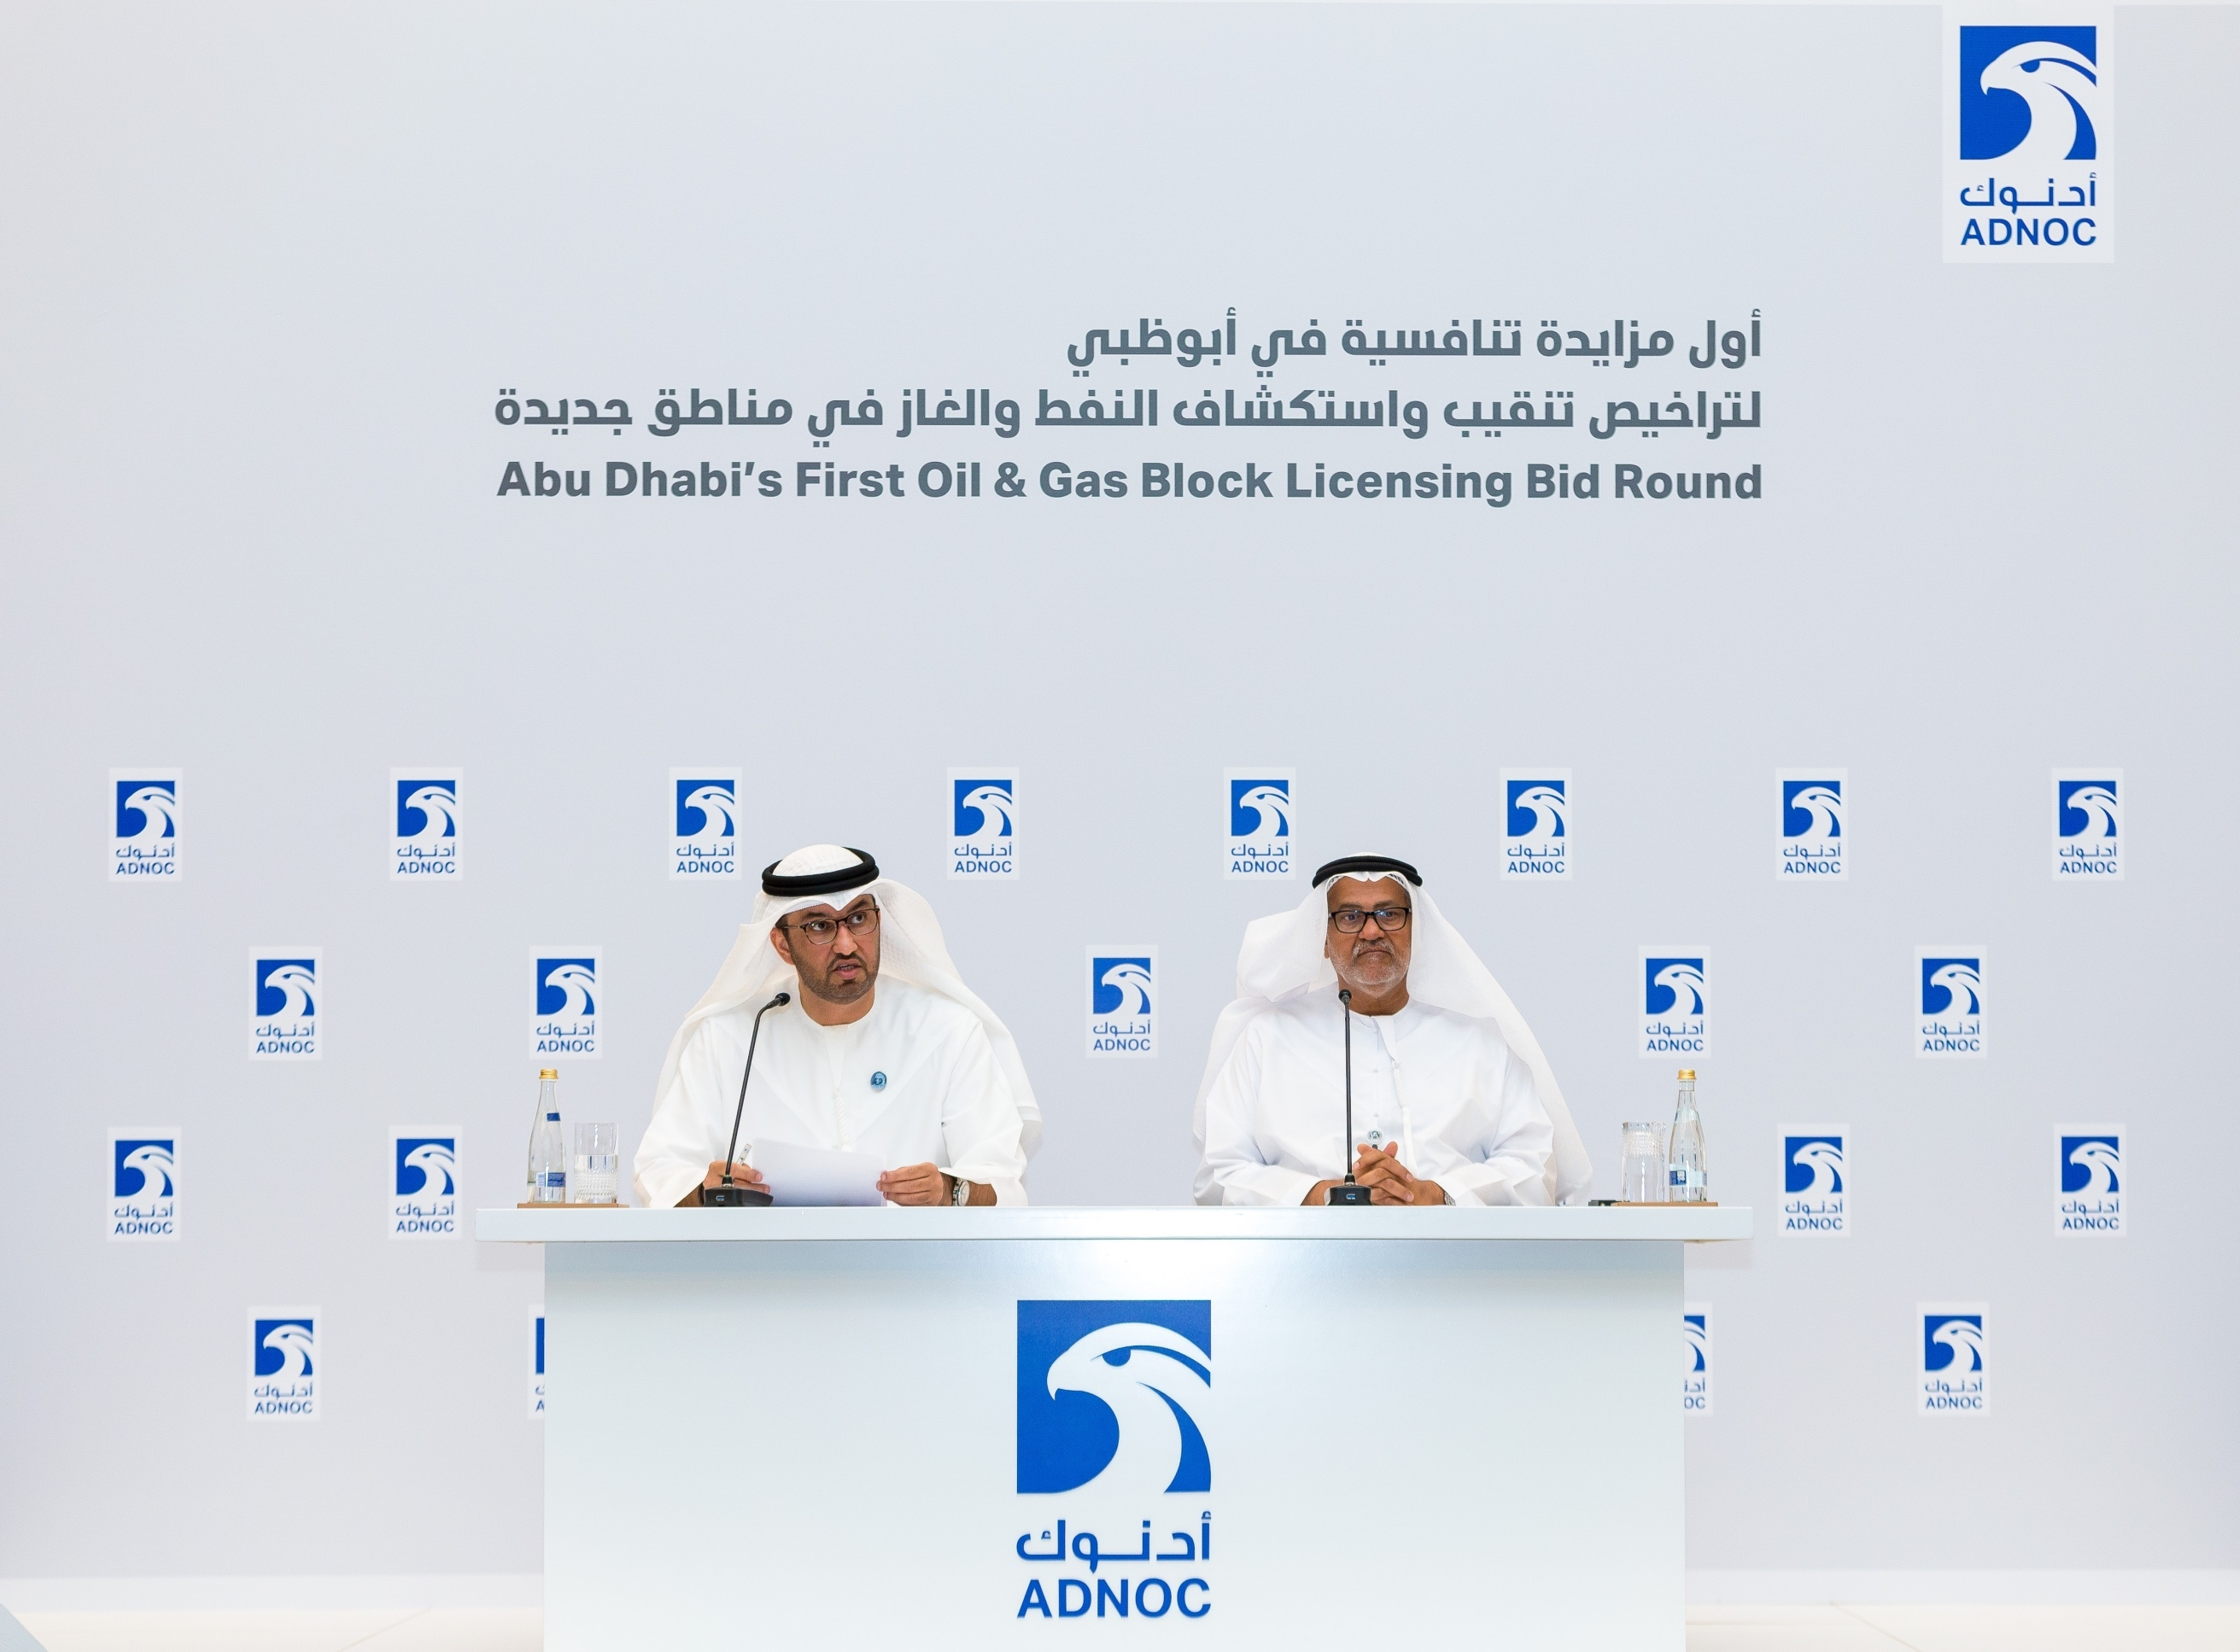 a business analysis of the abu dhabi national oil company an oil and gas company Home news advertise with us company a-z analysis about us products  &  state-owned company abu dhabi national oil company (adnoc) has signed   expand the downstream business, and retain value for the uae  in the  development of abu dhabi's integrated oil and gas sector and in the.